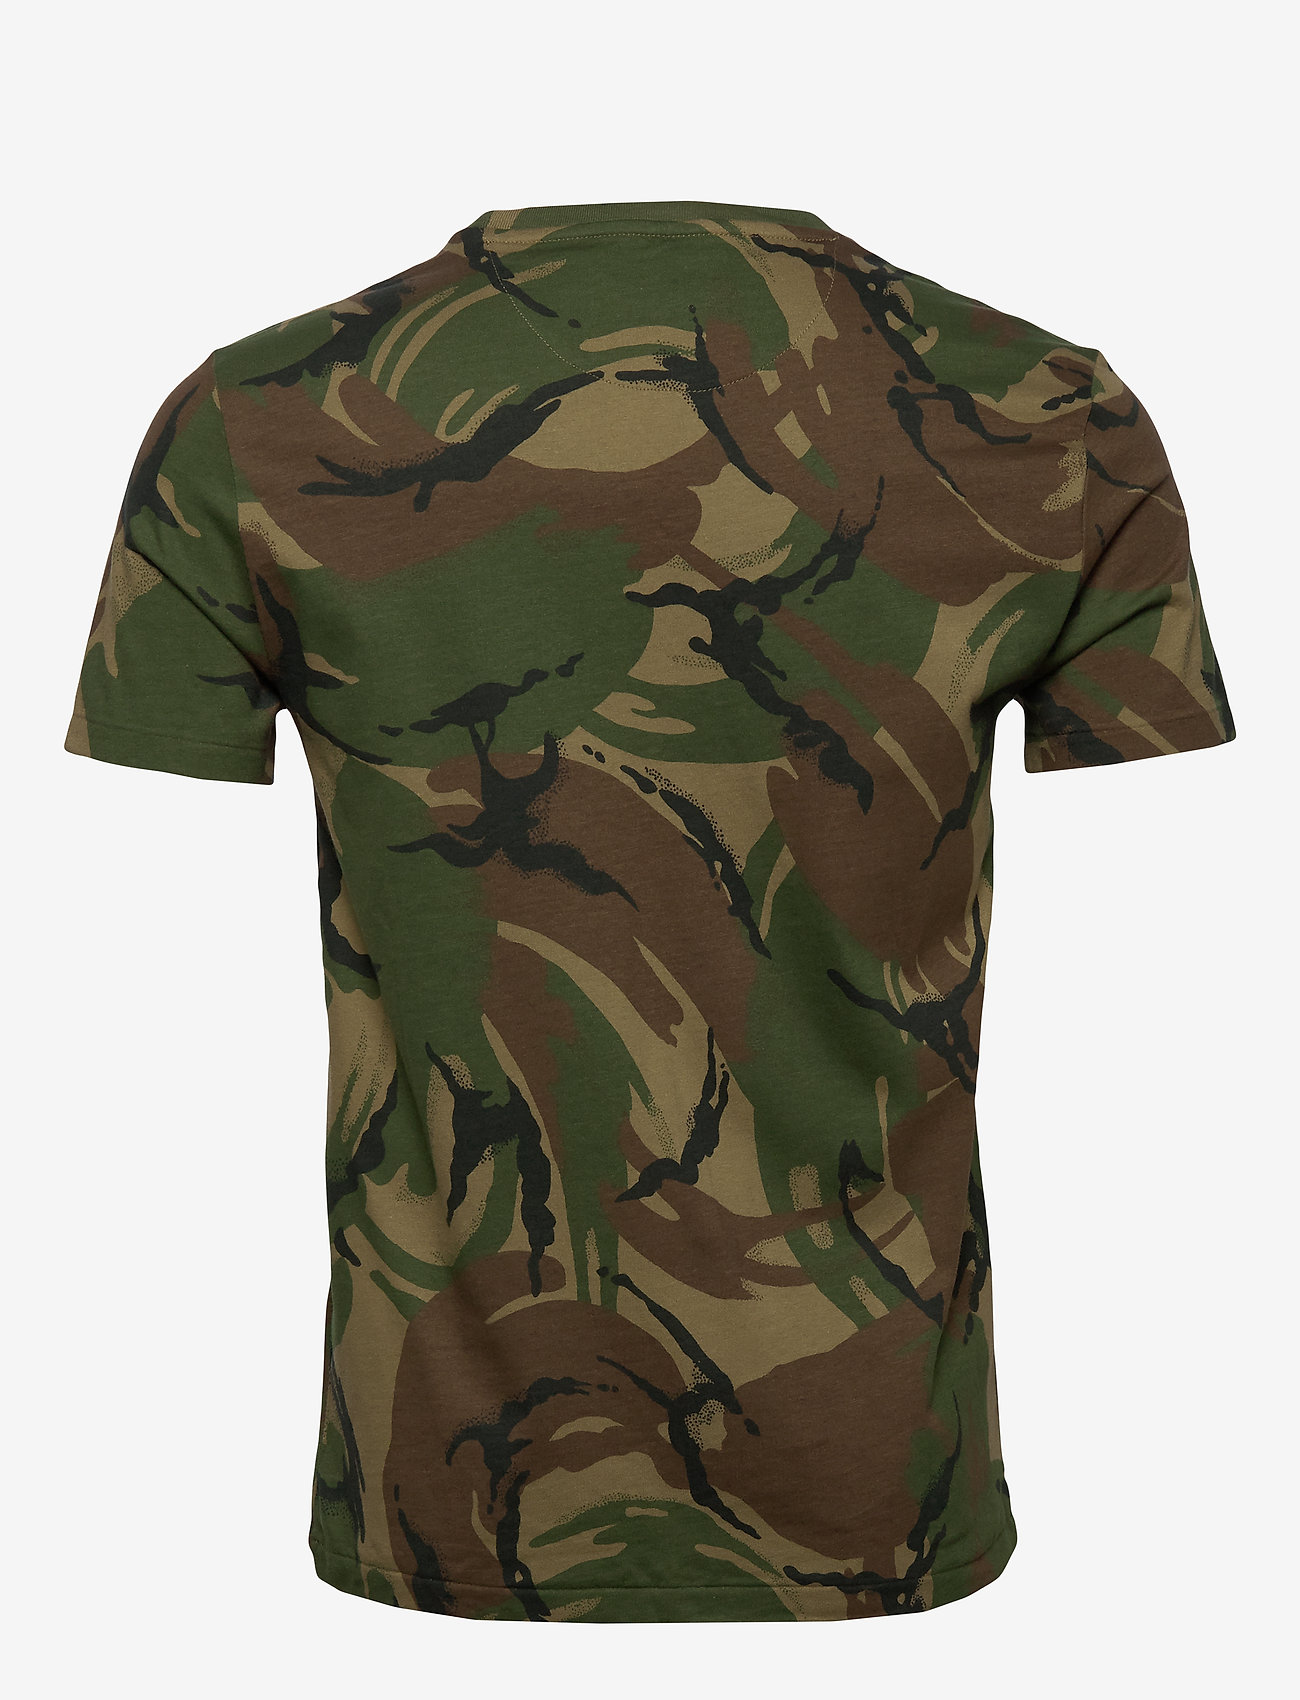 Custom Slim Fit Camo T-shirt (British Elmwood C) (626.50 kr) - Polo Ralph Lauren